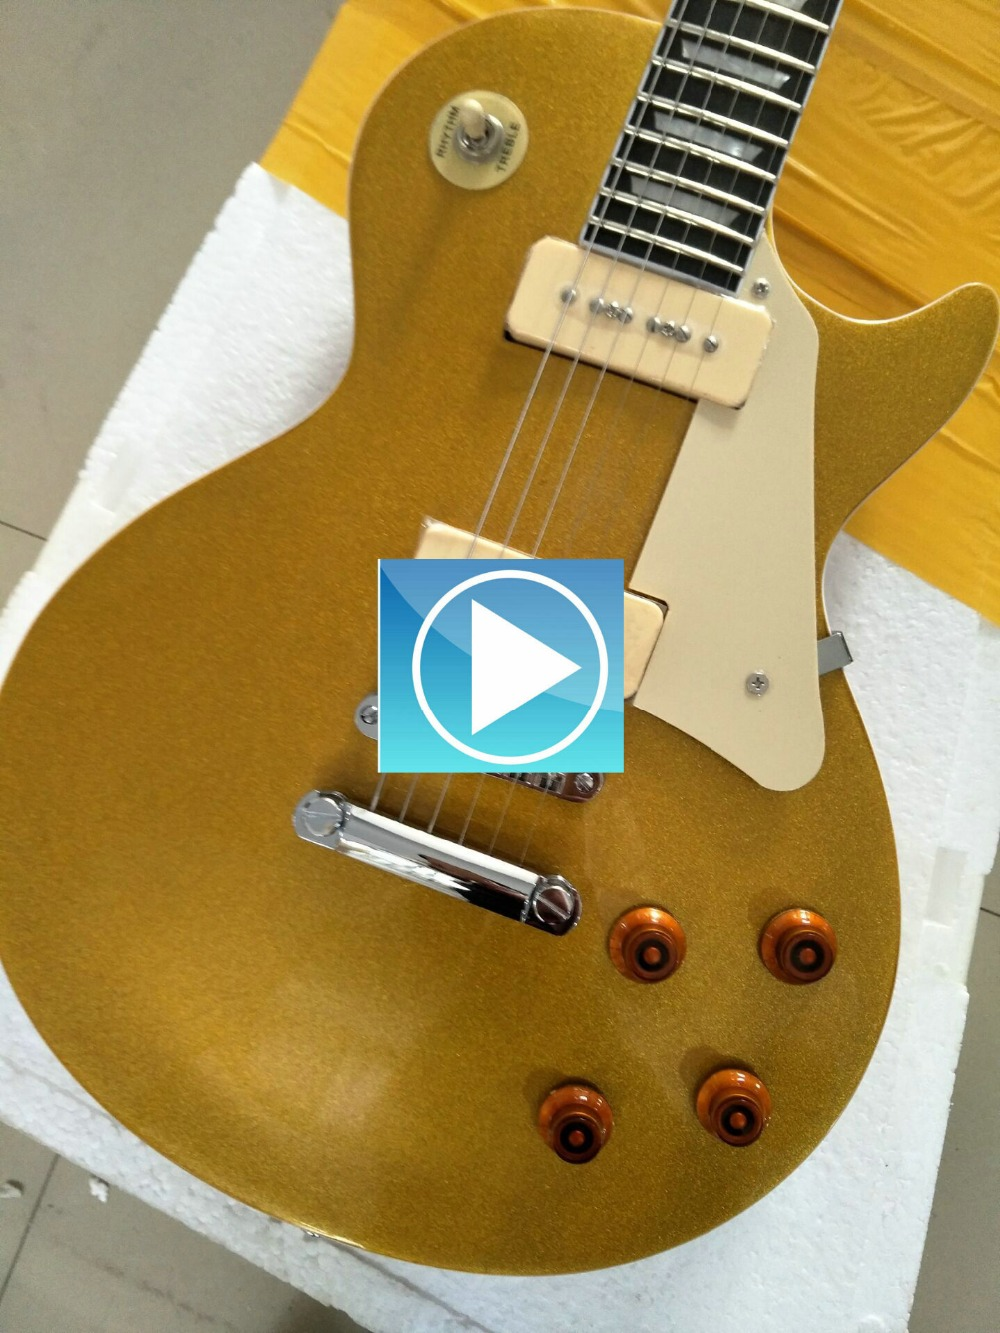 Wholesale les New paul Custom Shop gold color Electric Guitar paul ebony Fretboard China Guitar Factory Free Shipping free shipping chibson les custom electric guitar ebony fretboard fretside binding paul in brown burst back natural 140815